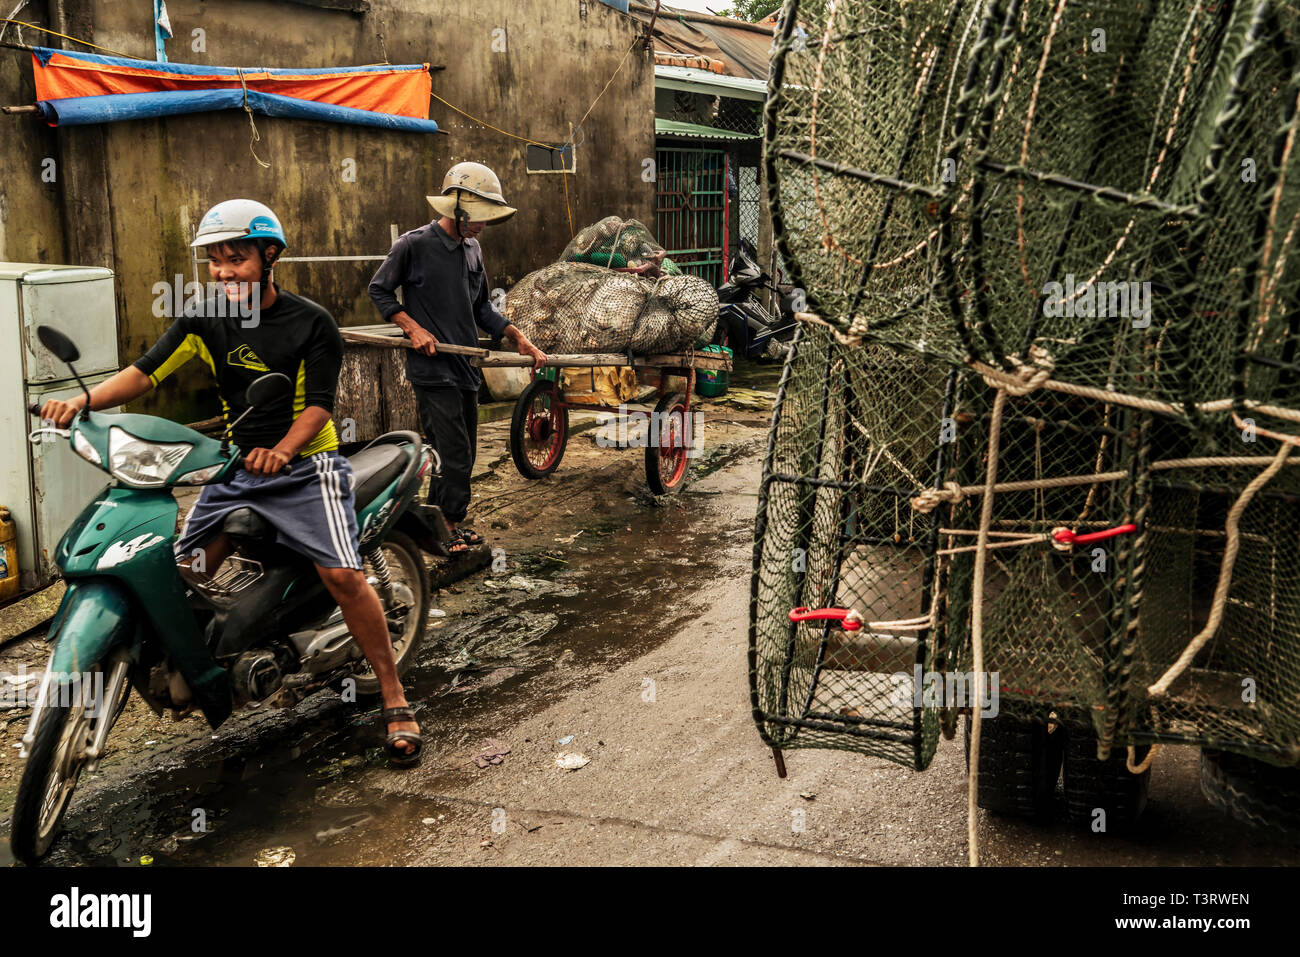 Hoi An fishing fleet - Stock Image